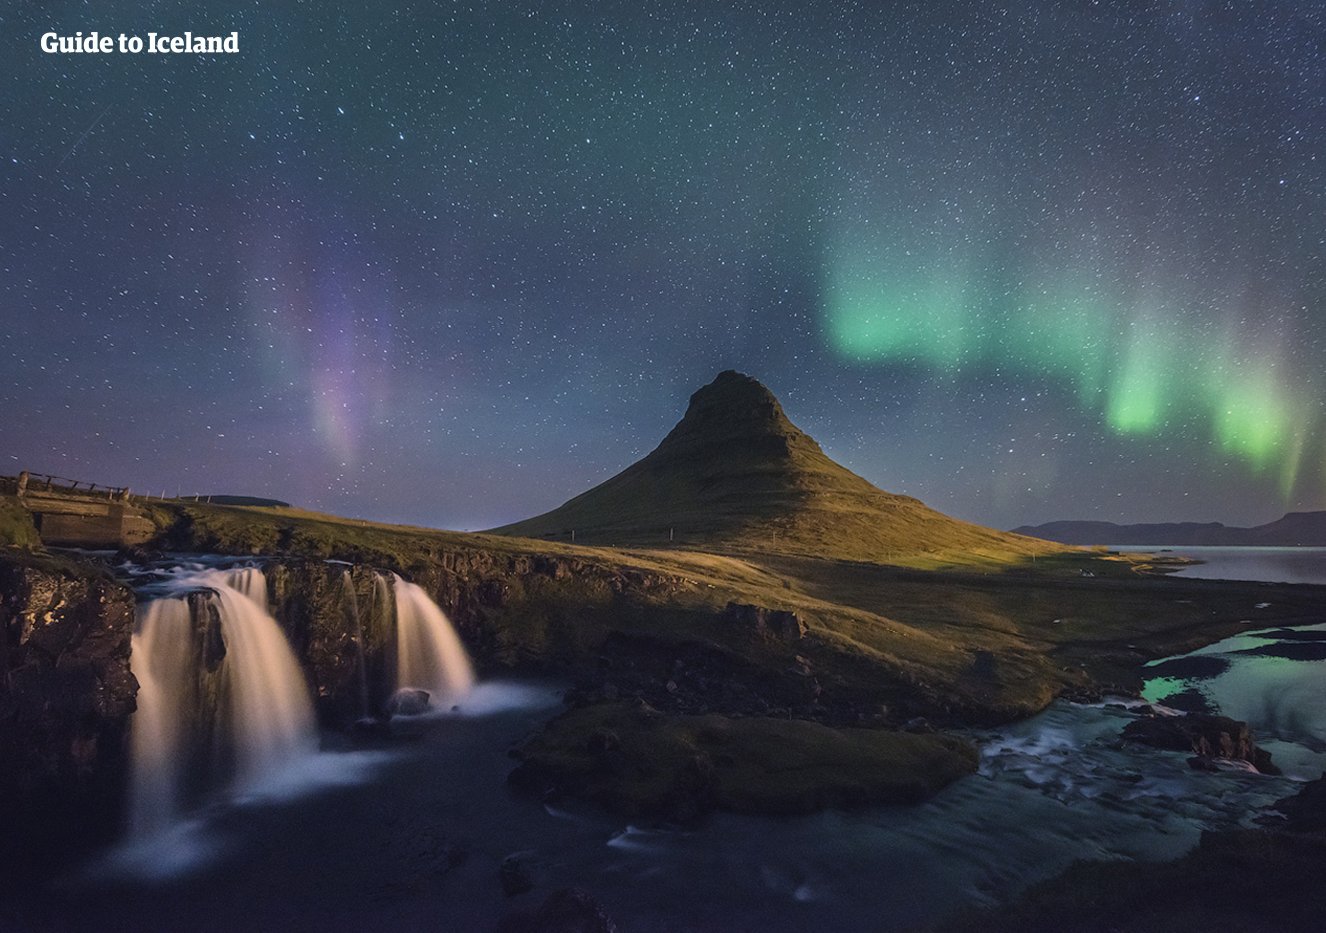 The fabulous Northern Lights dance across the sky behind one of the most photographed mountains, Mount Kirkjufell on the Snæfellsnes Peninsula.